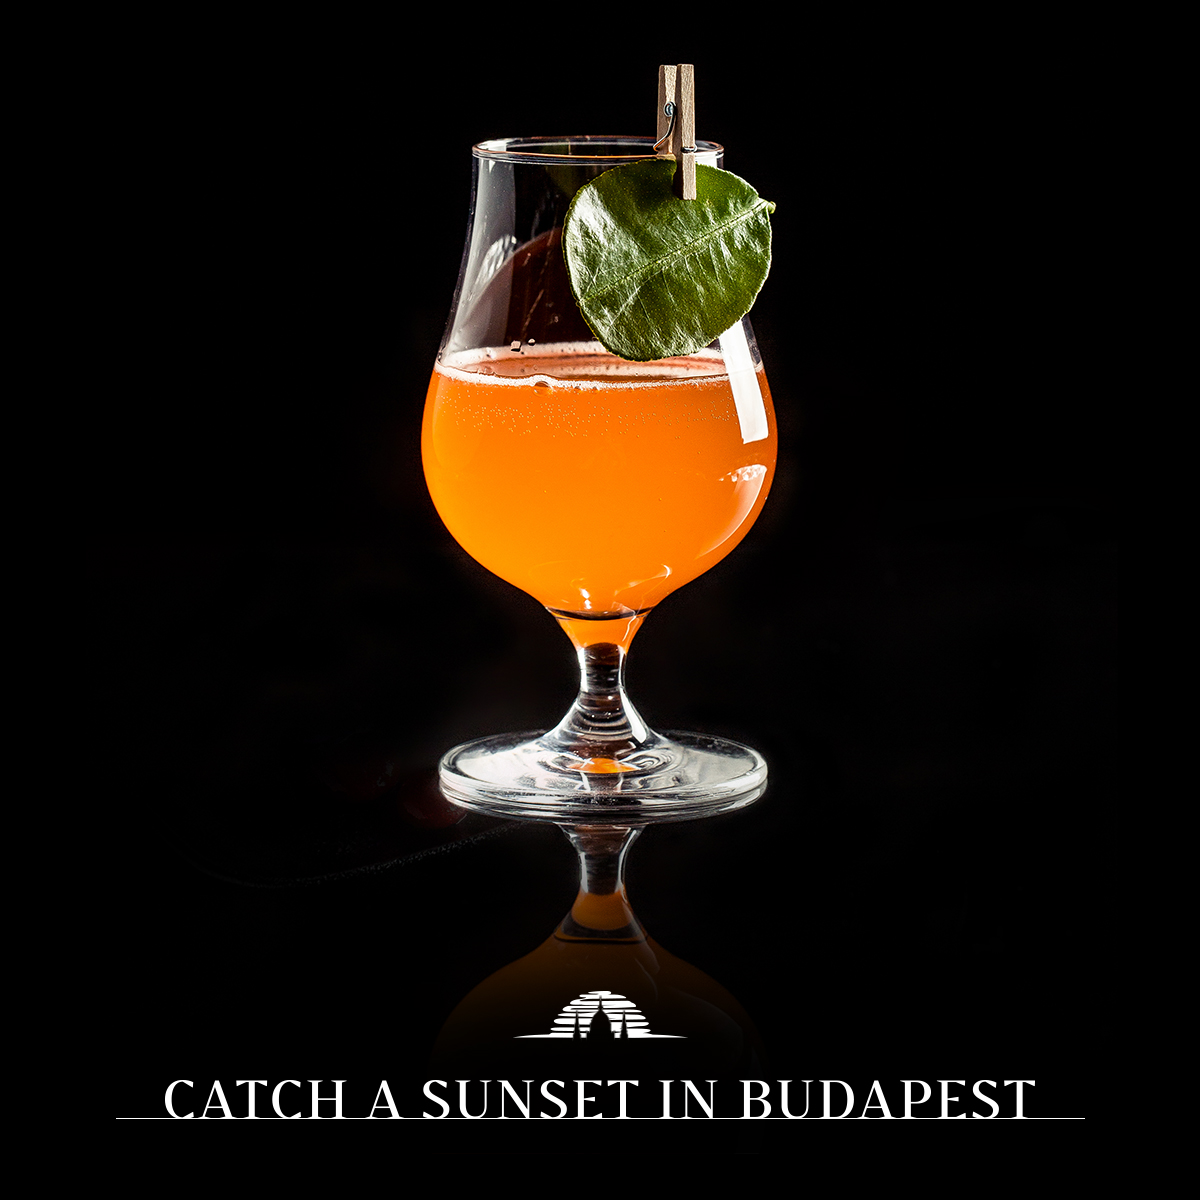 Catch a cocktail in Budapest